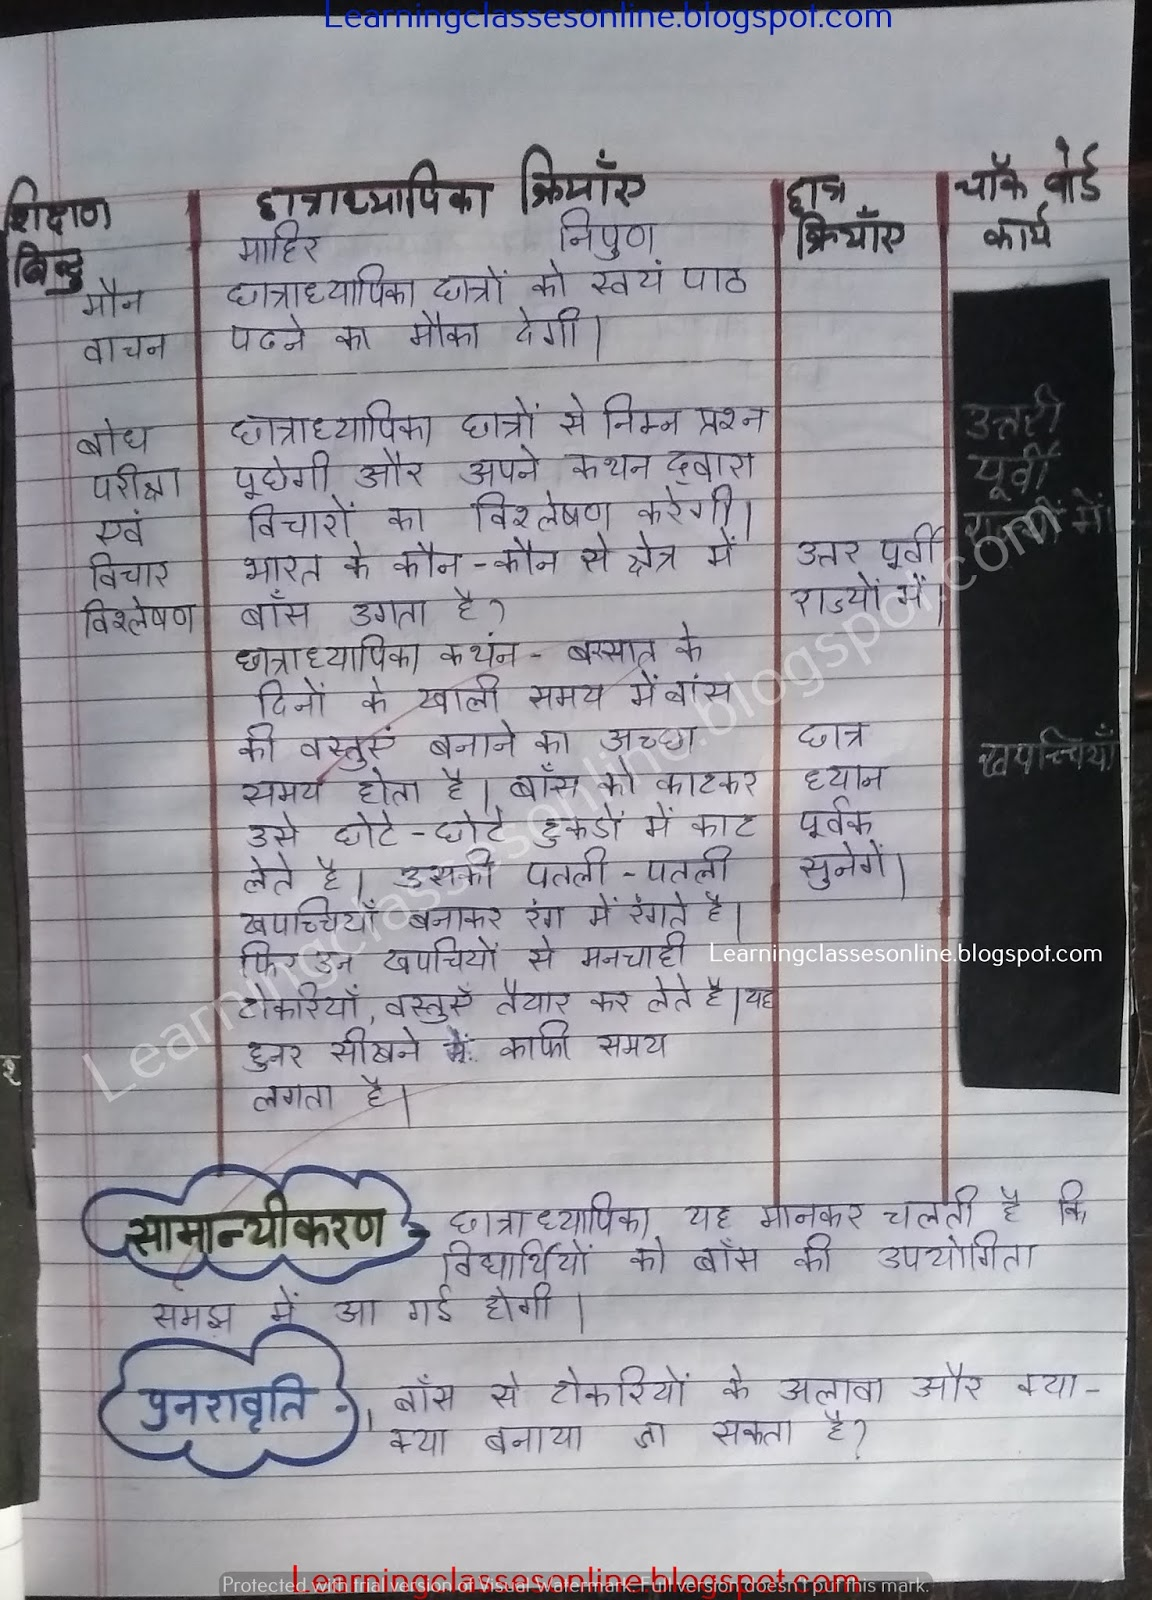 bed, ded, btc, nios, ignou, lesson plan in Hindi free download pdf